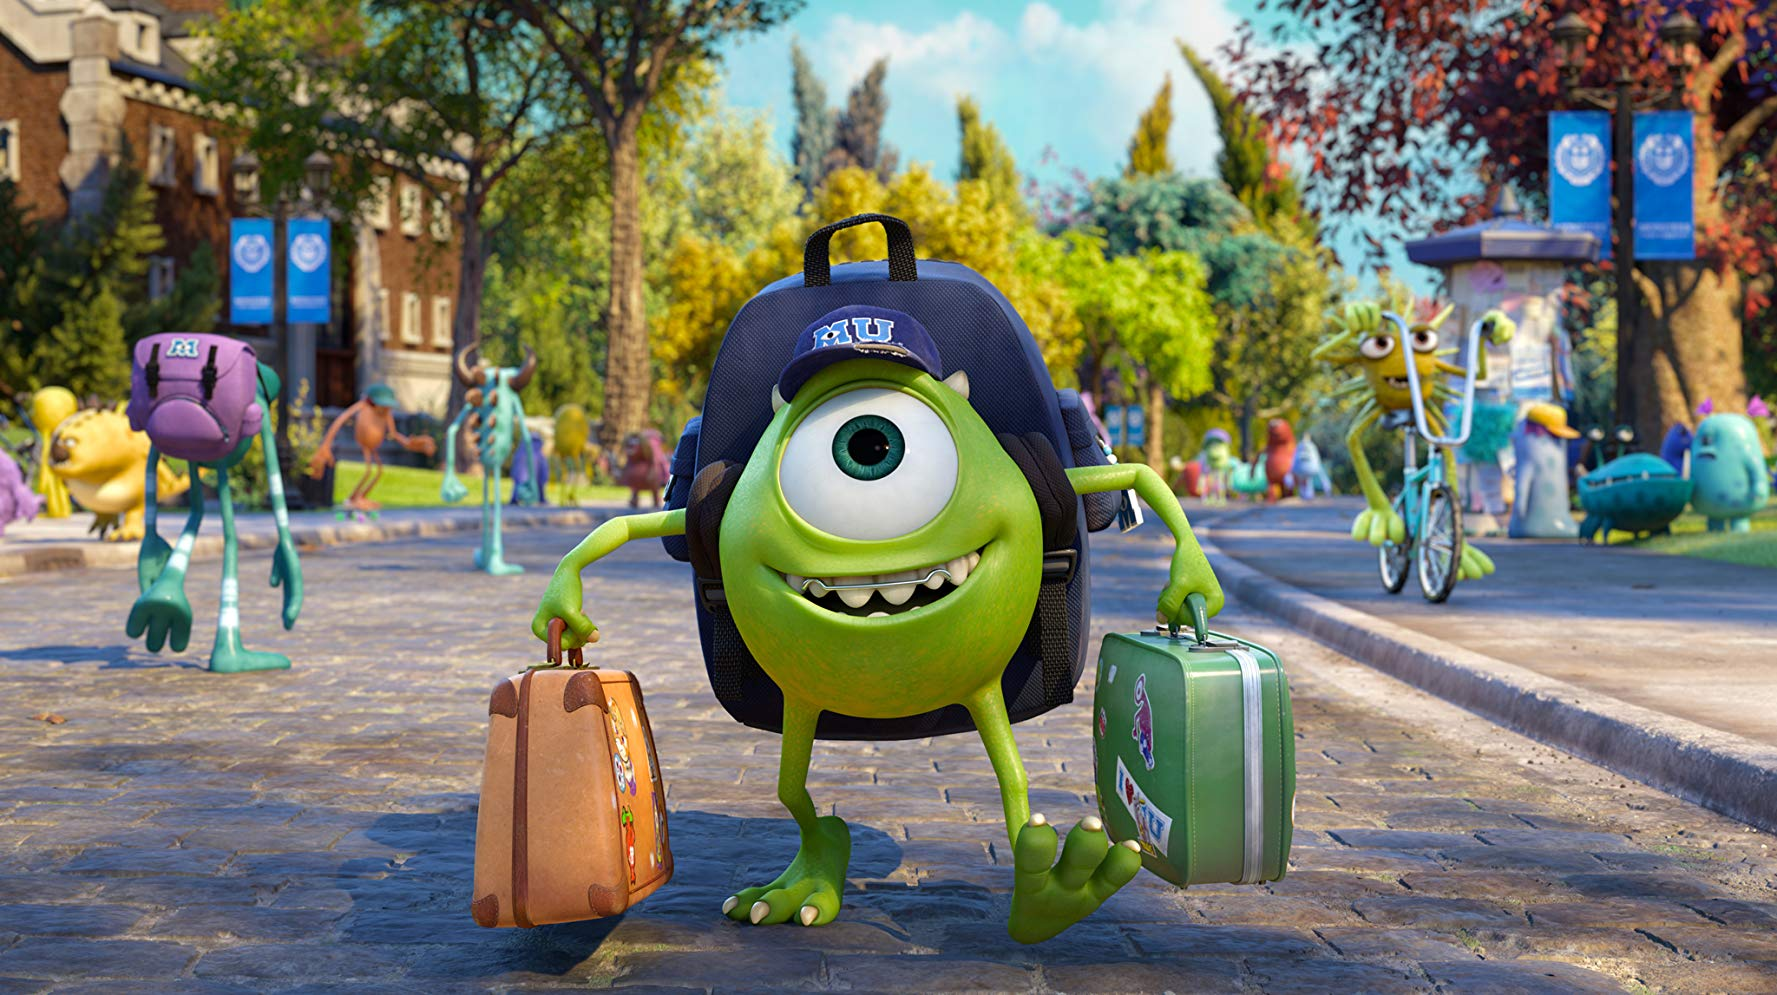 The young Mike Wazowski arrives on campus in Monsters University (2013)